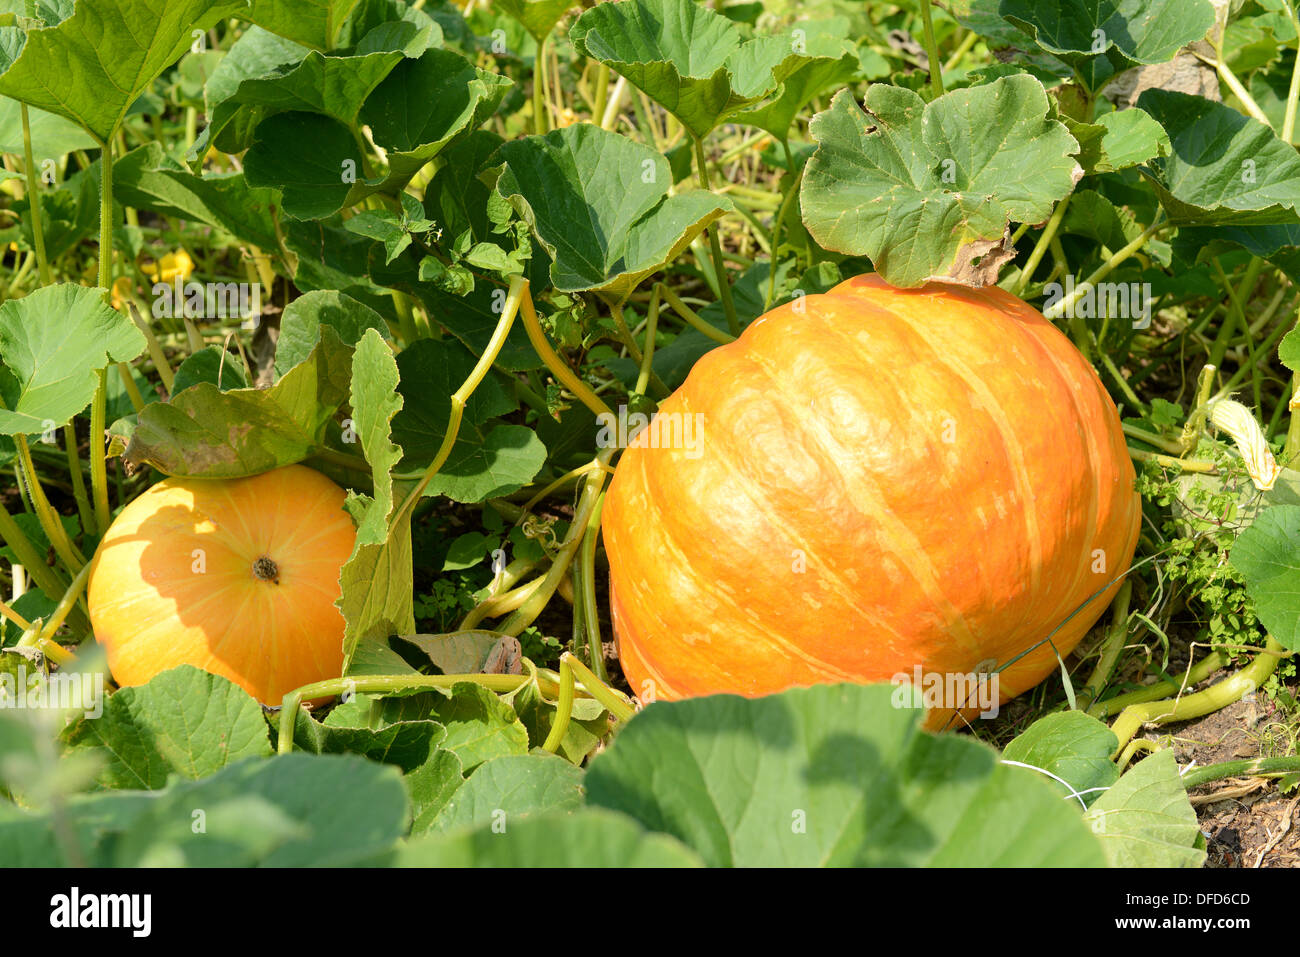 Pumpkins growing in garden - Stock Image